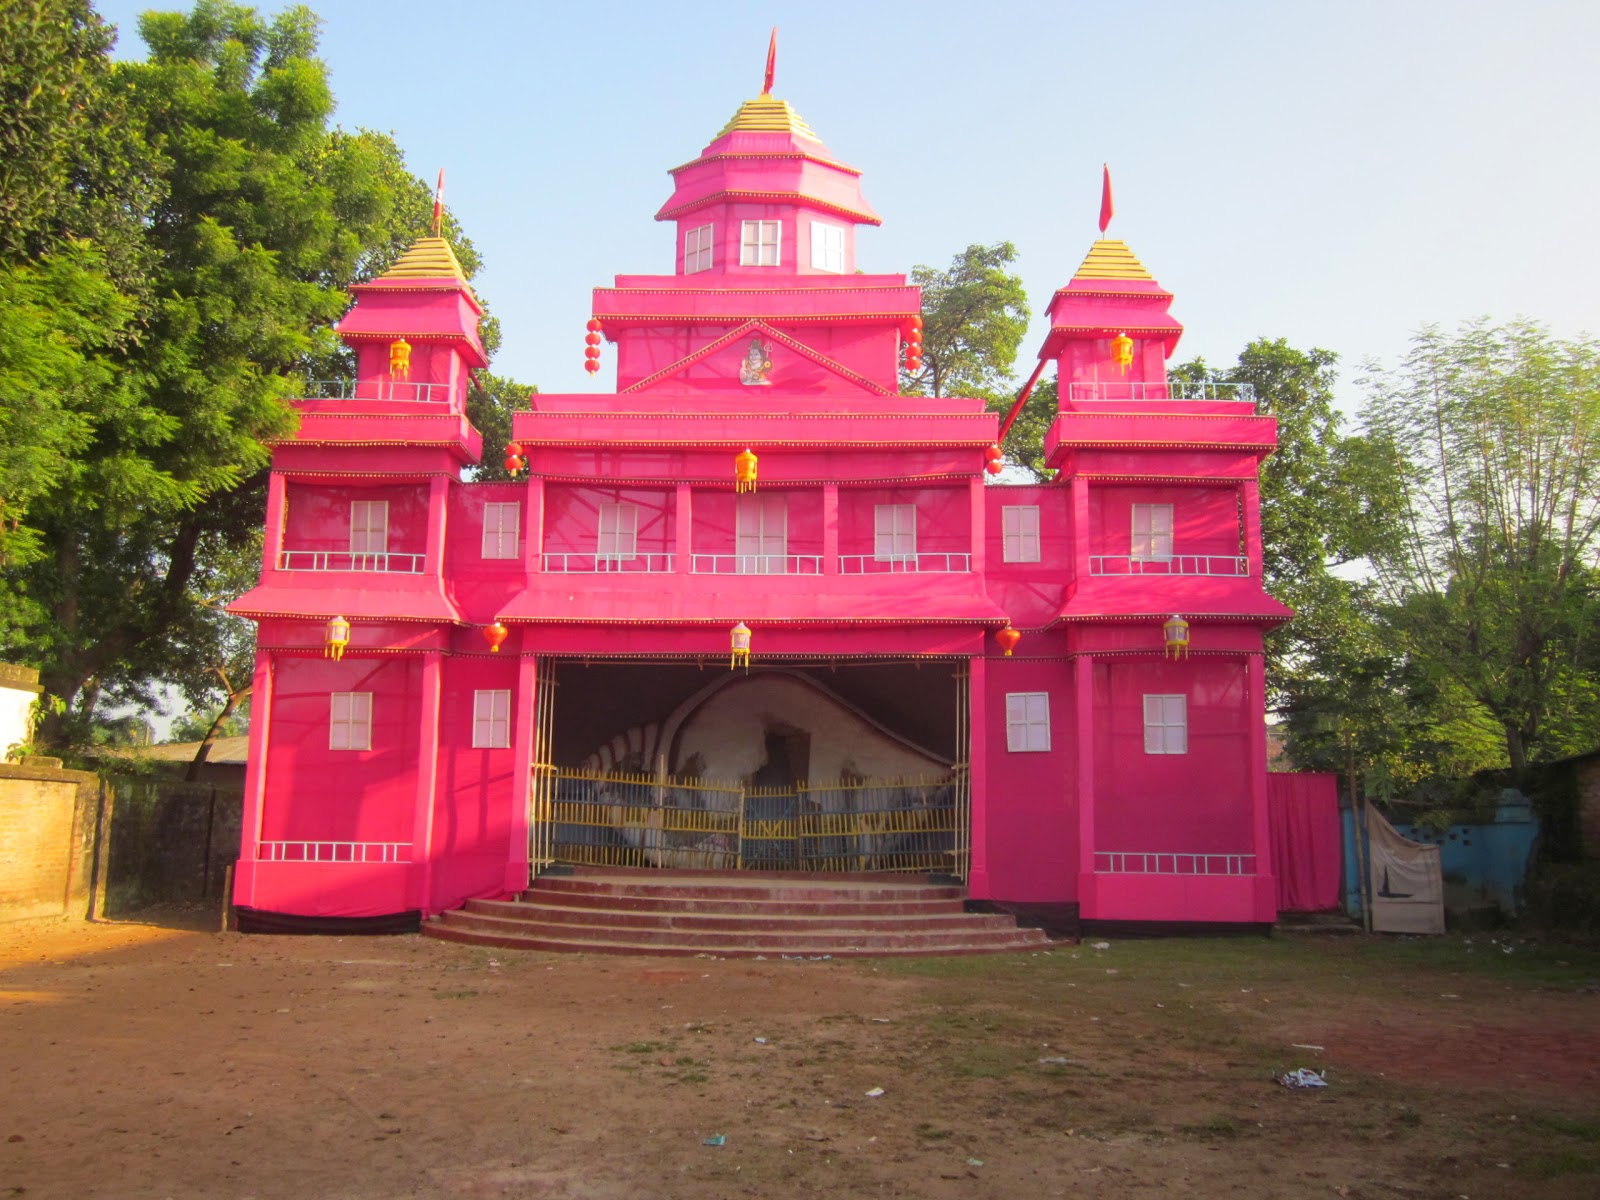 Village flute where people are still people dinajpur district hosts many elaborate durga puja pandals every year altavistaventures Choice Image